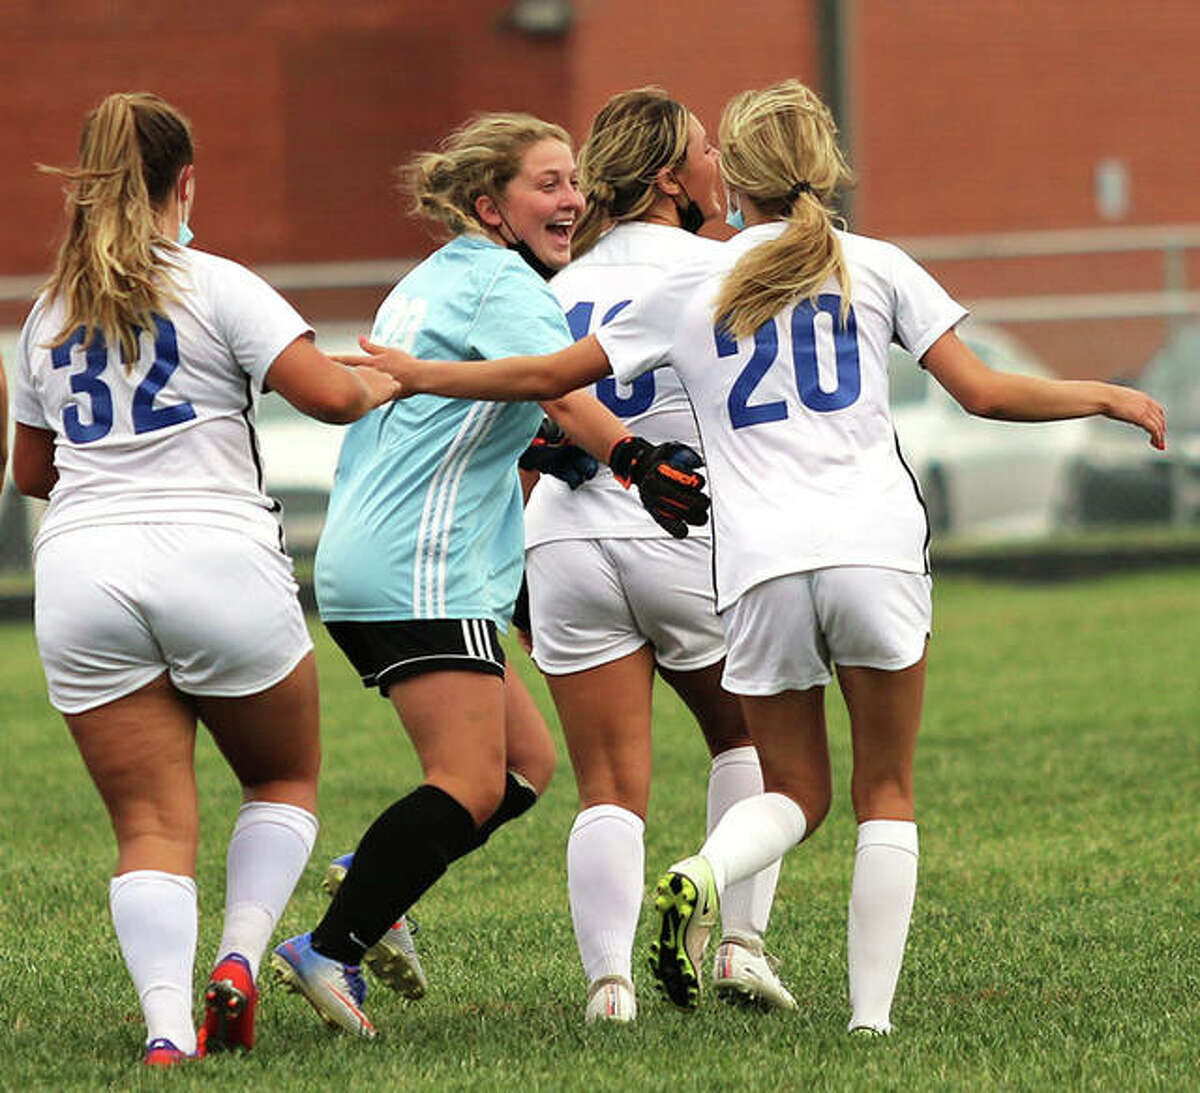 Carlinville goalie Matilda Mitchell (second left) races to midfield to join teammates in Isabelle Stoops (32) and Jill Stayton (20) and Maycee Gall after Stayton's game-tying goal late in the second half of a Class 1A regional match against Southwestern in Piasa.